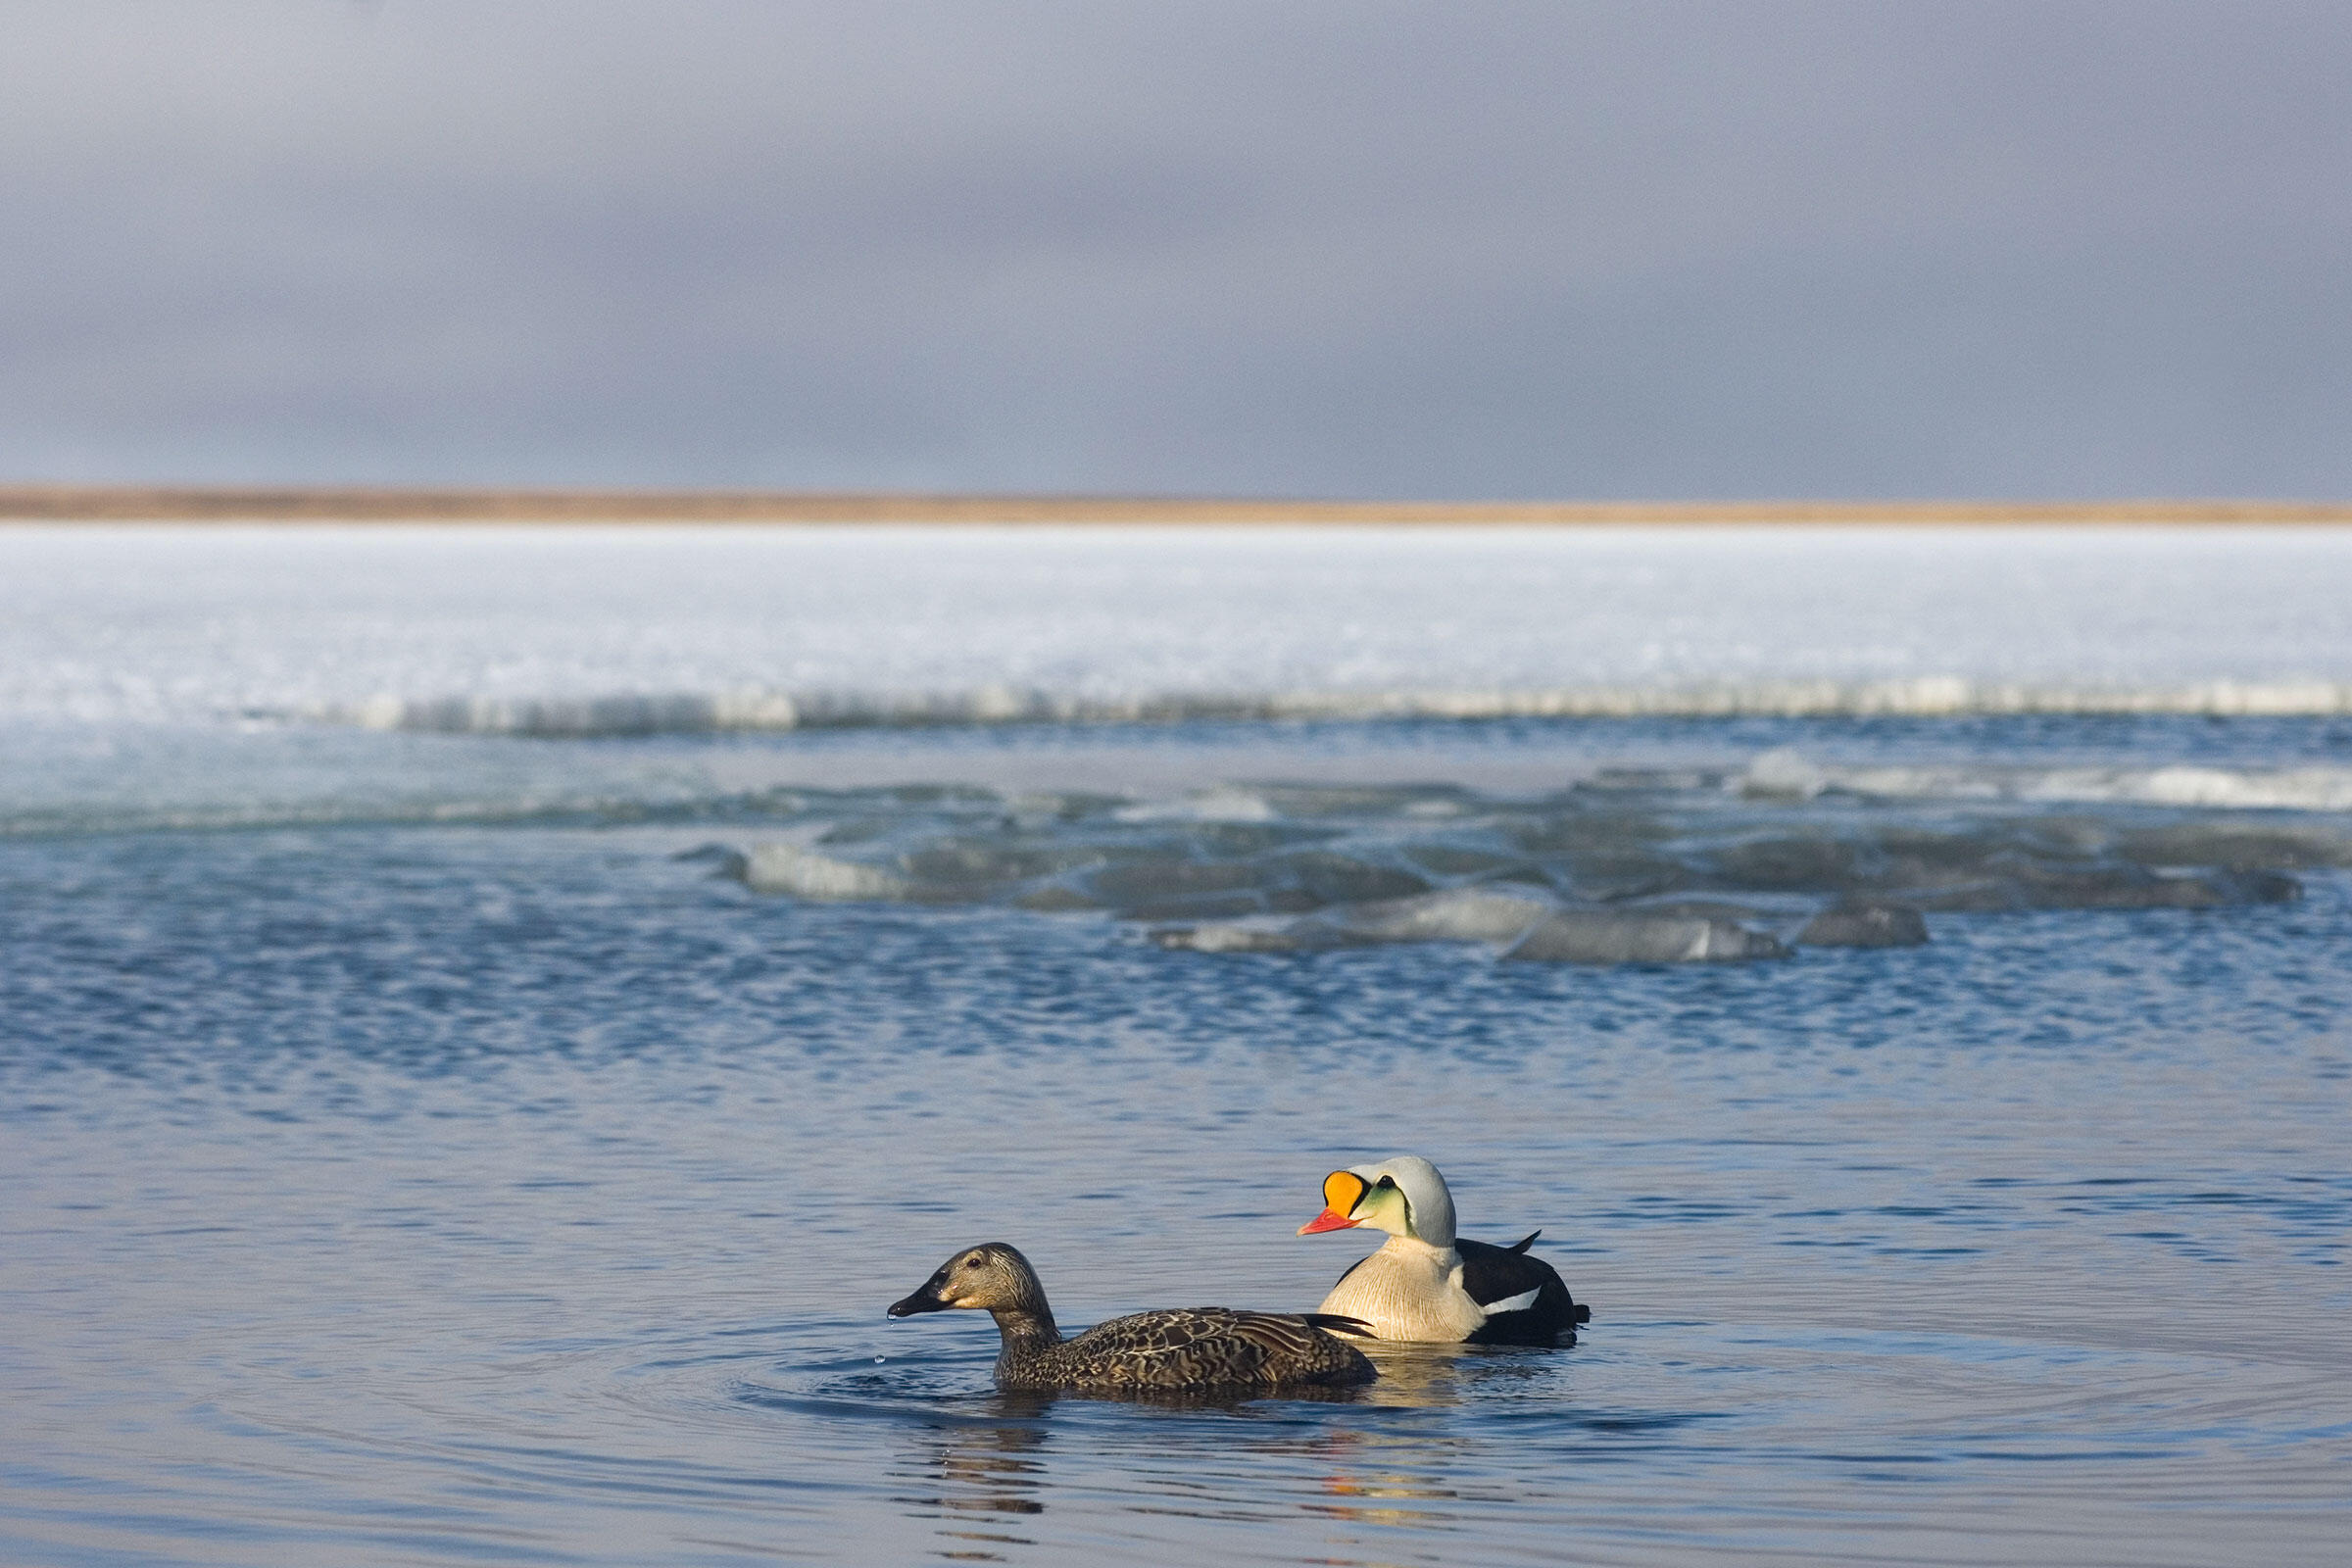 Efforts to expand oil drilling in the National Petroleum Reserve-Alaska could degrade habitat for King Eiders and other wildlife. Steven J. Kazlowski/Alamy